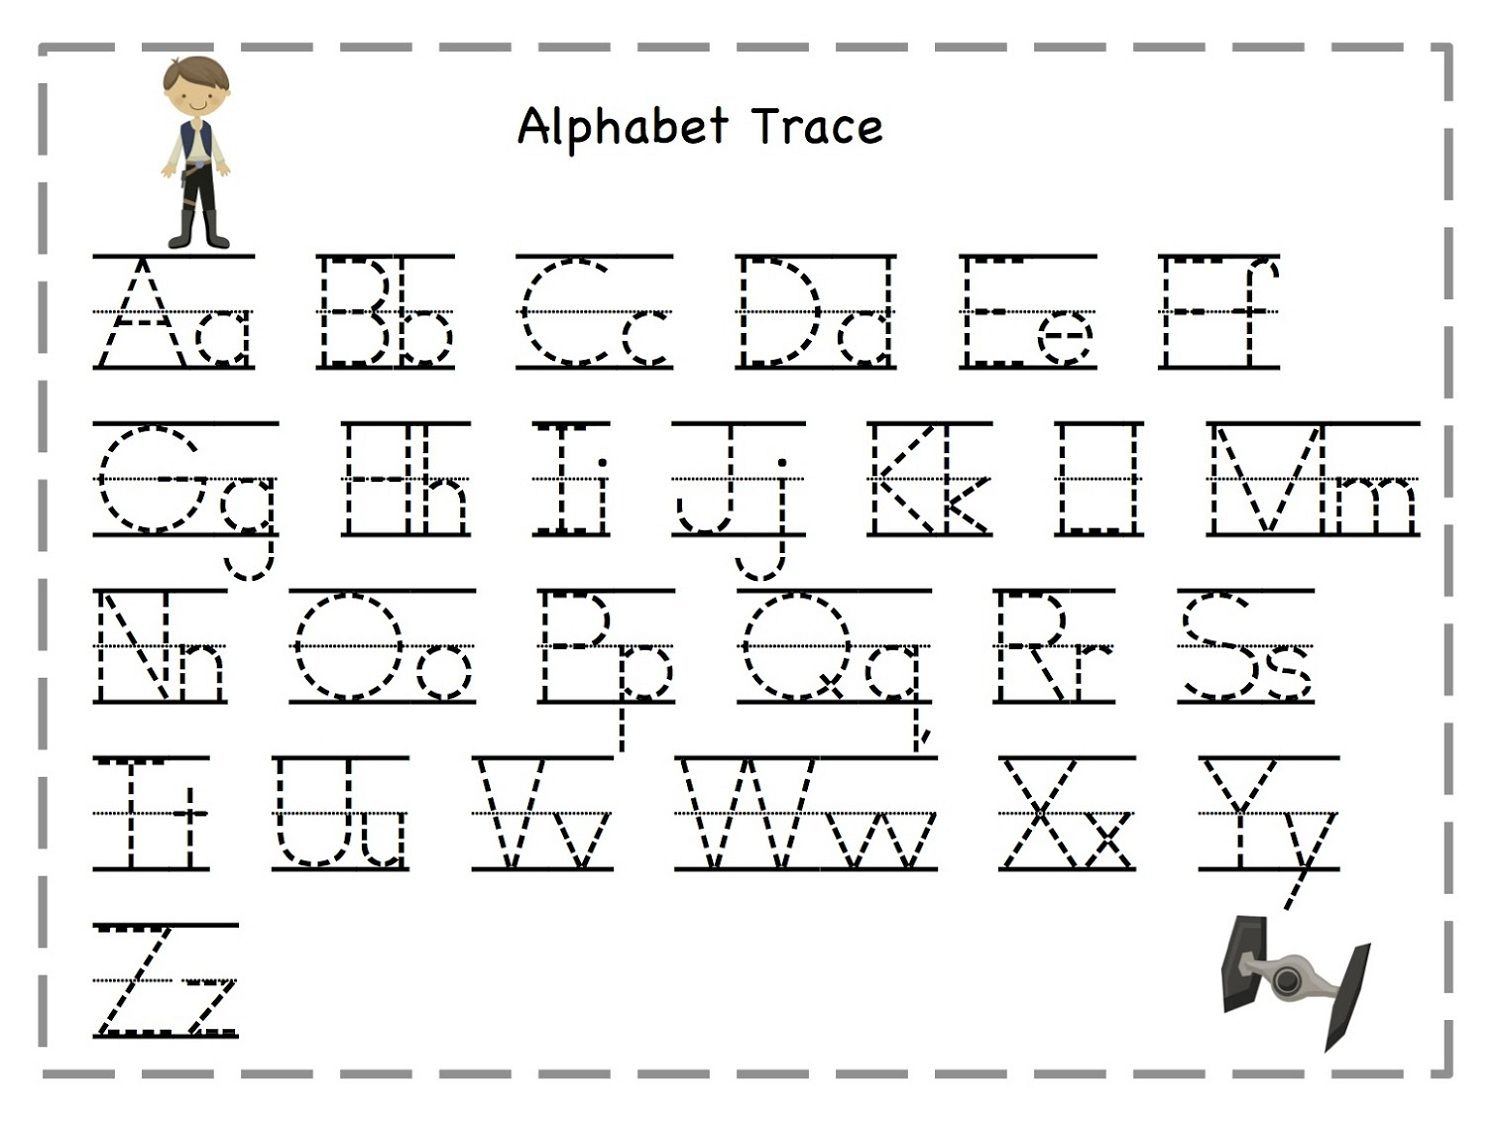 Worksheets Pre K Alphabet Tracing Worksheets tracing letters for kids activities pinterest today our site present a new post about your little child can do practice at home with letters